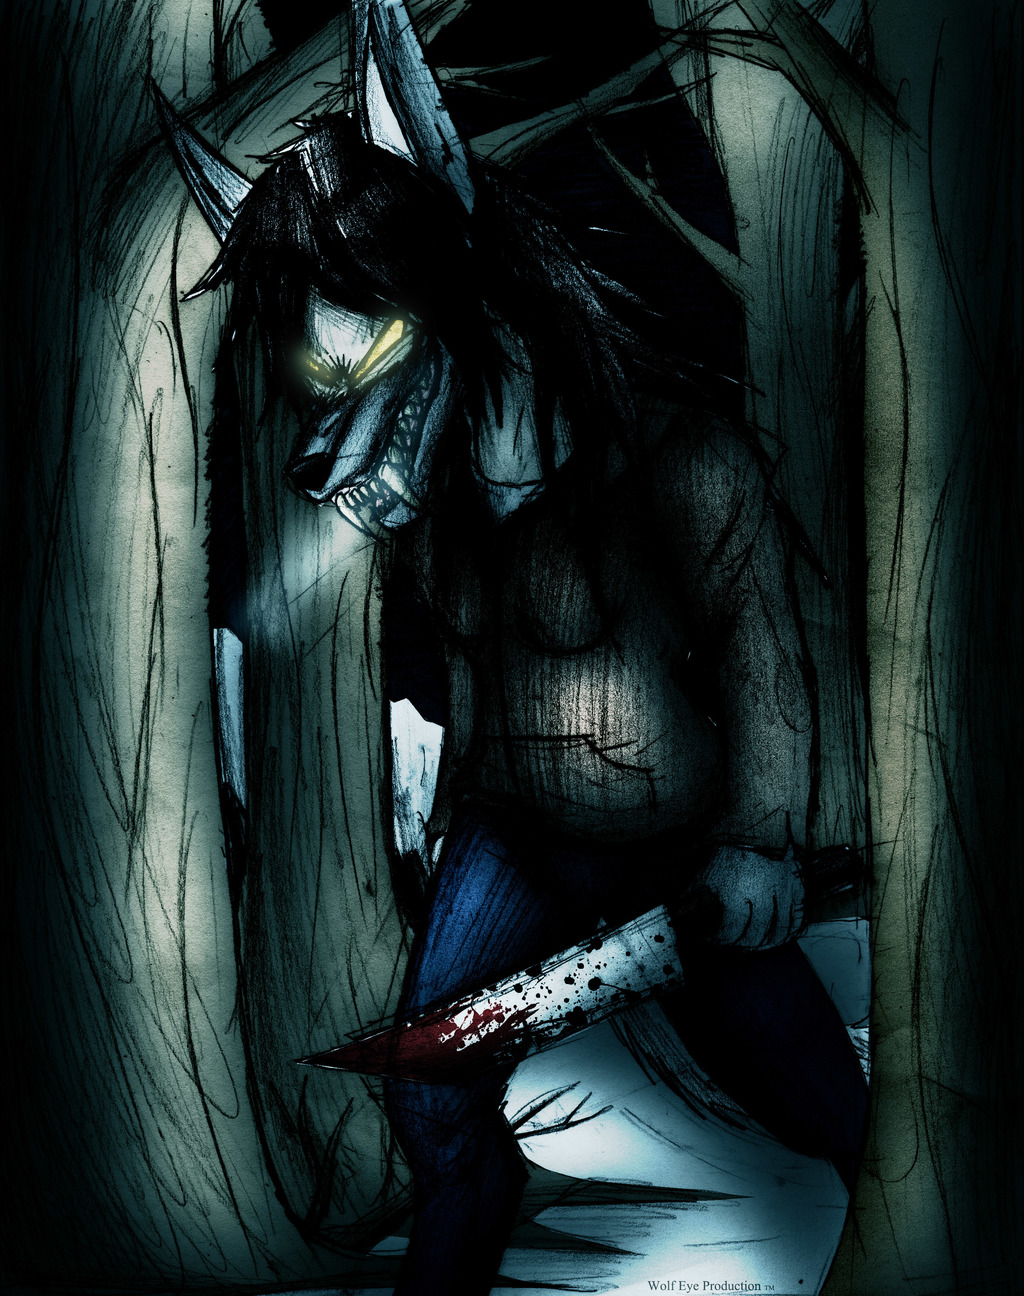 Most recent image: Varulven (The Werewolf)